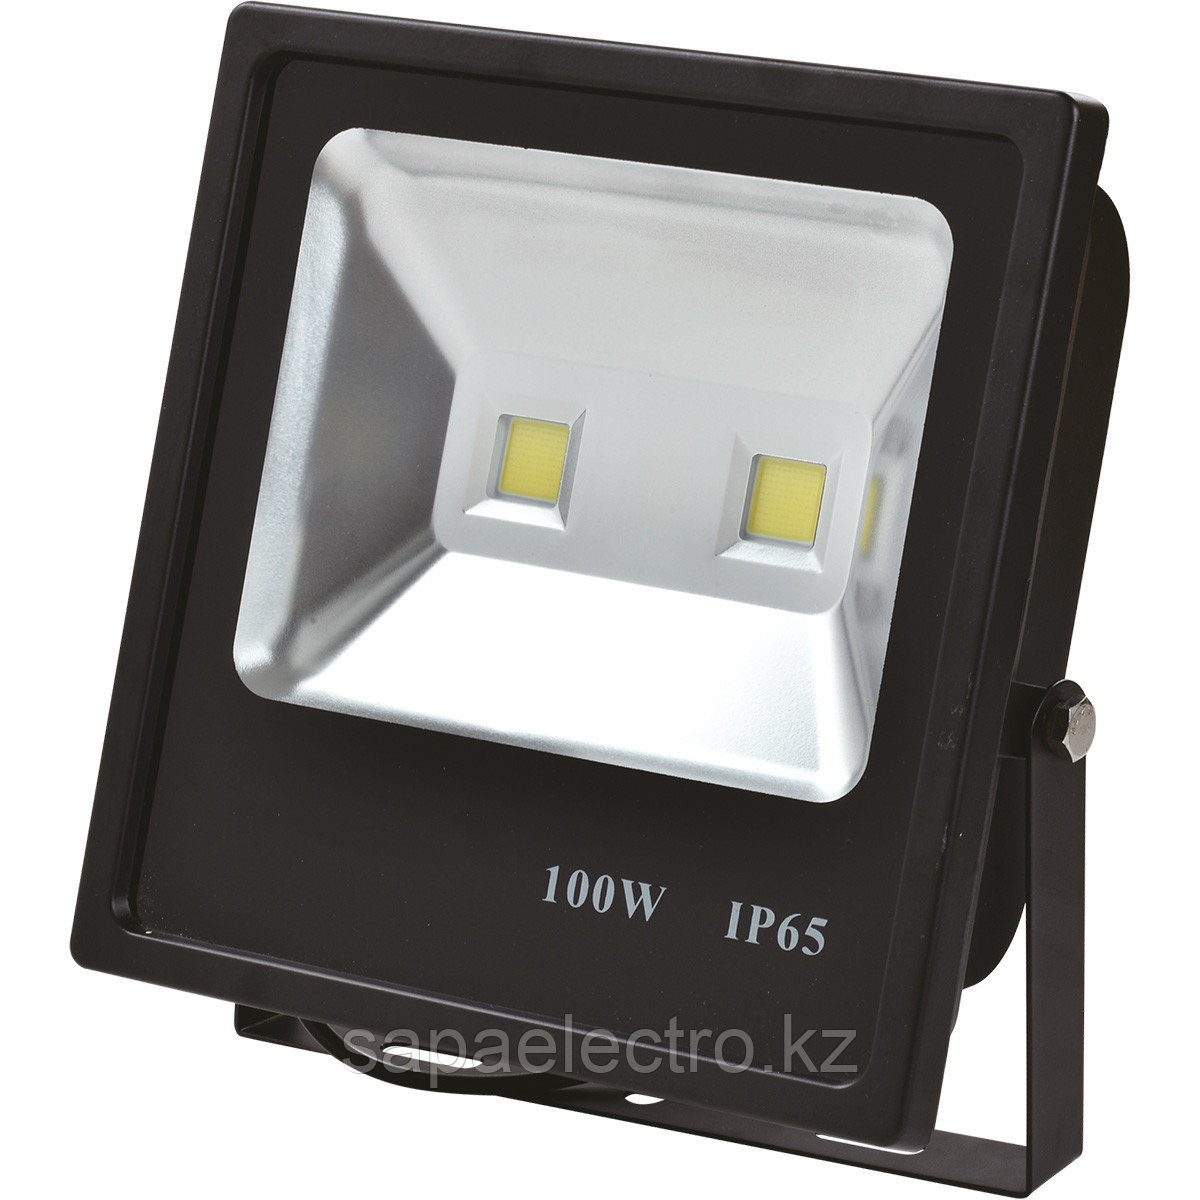 Прожектор LED TS100 100W 6000K BLACK (TS)5шт